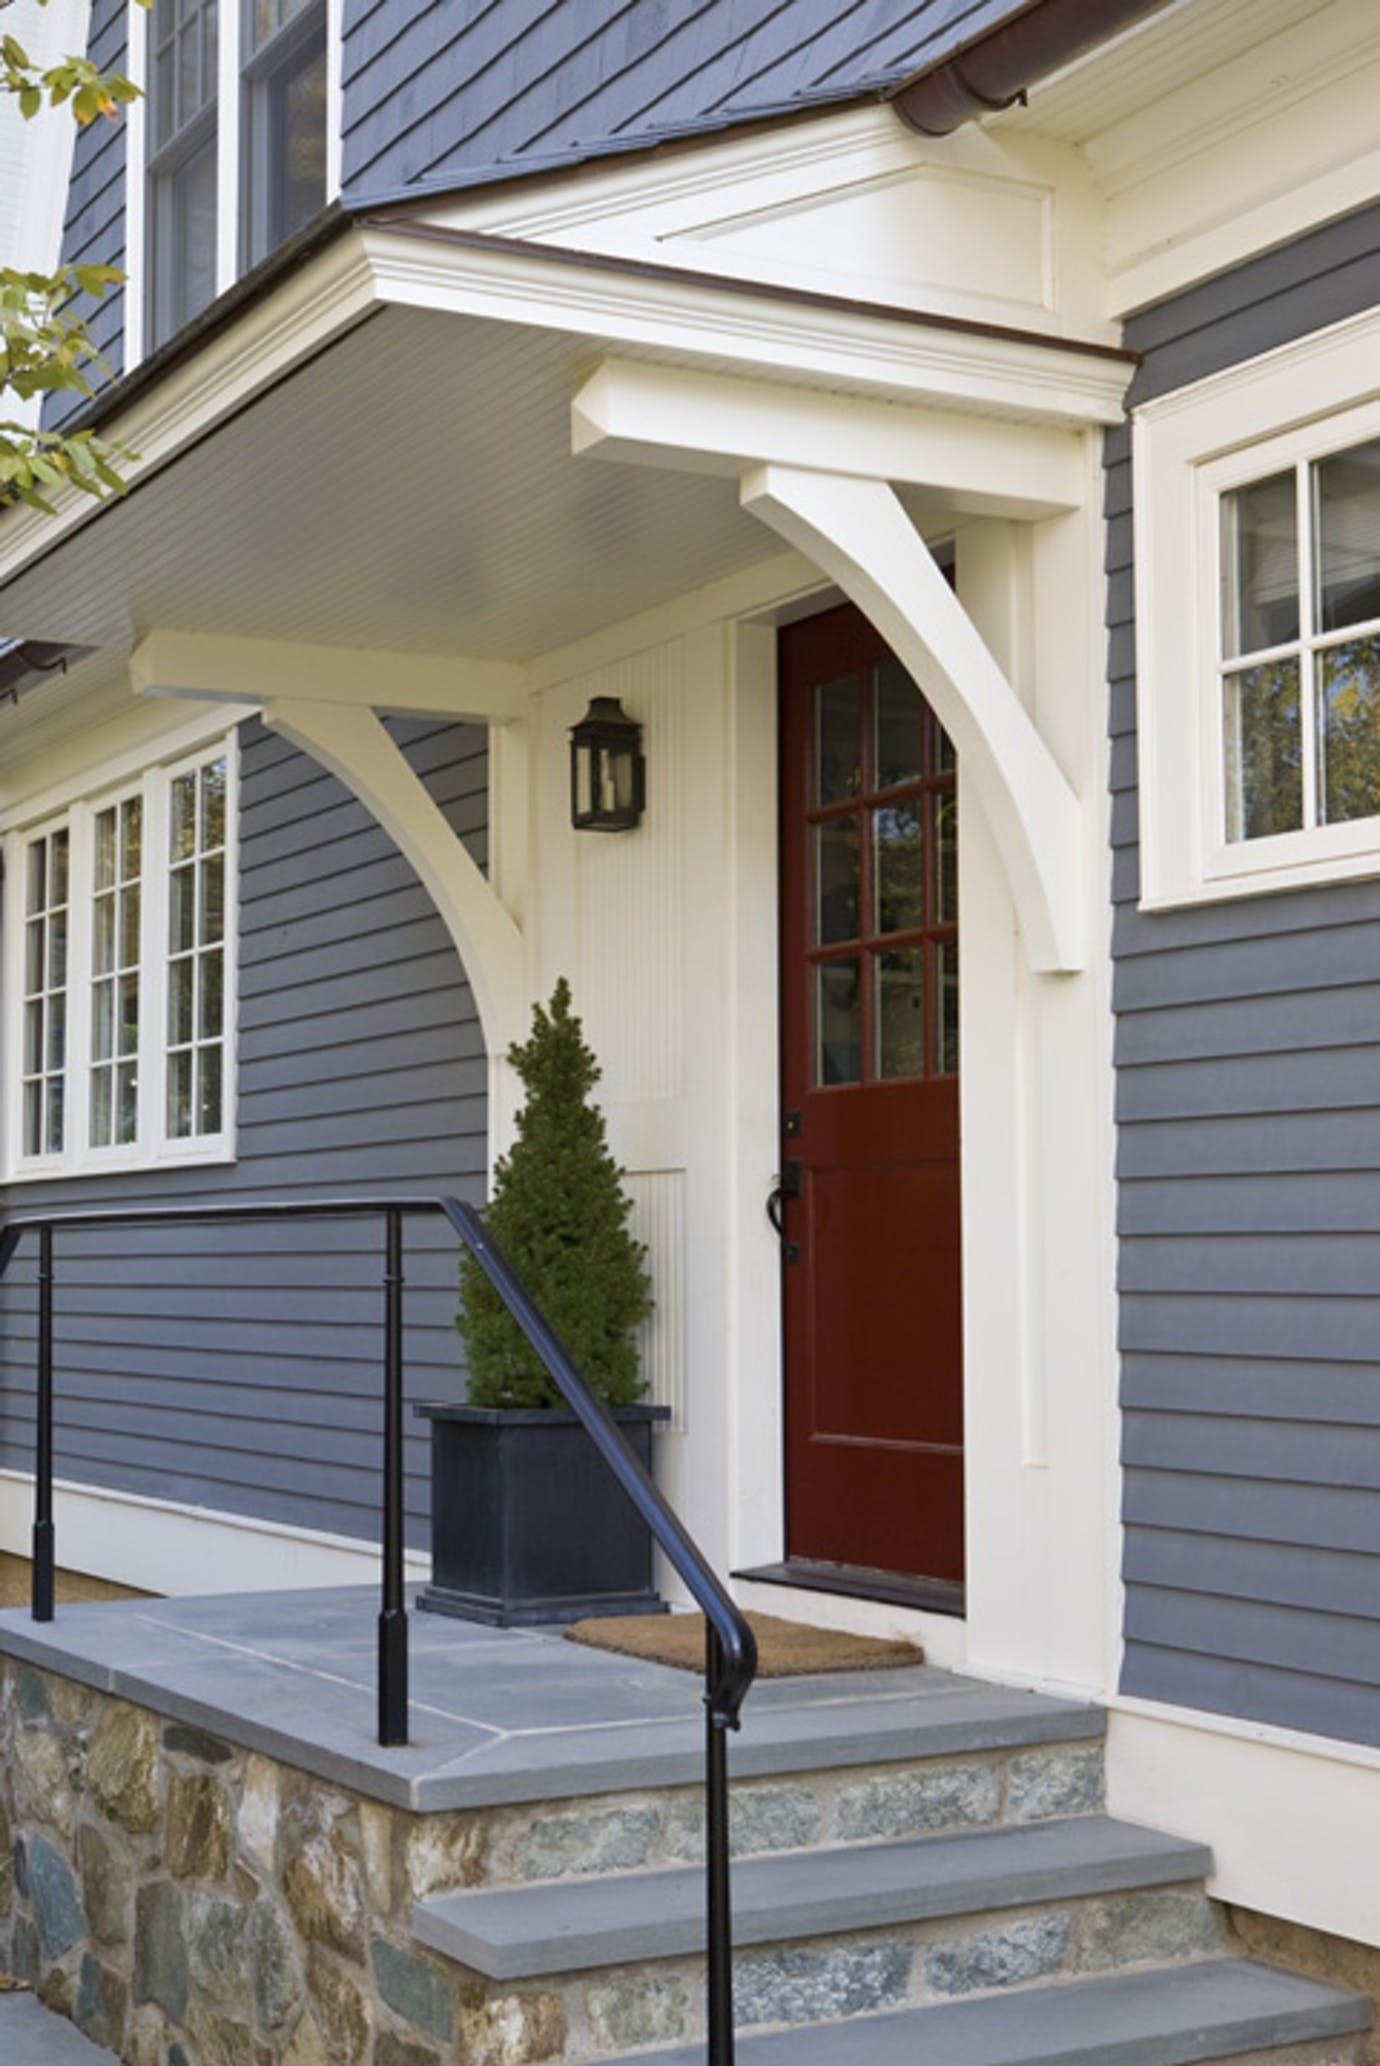 Kitchen bay window exterior  side door detail shingle style entryway front facade by anne decker